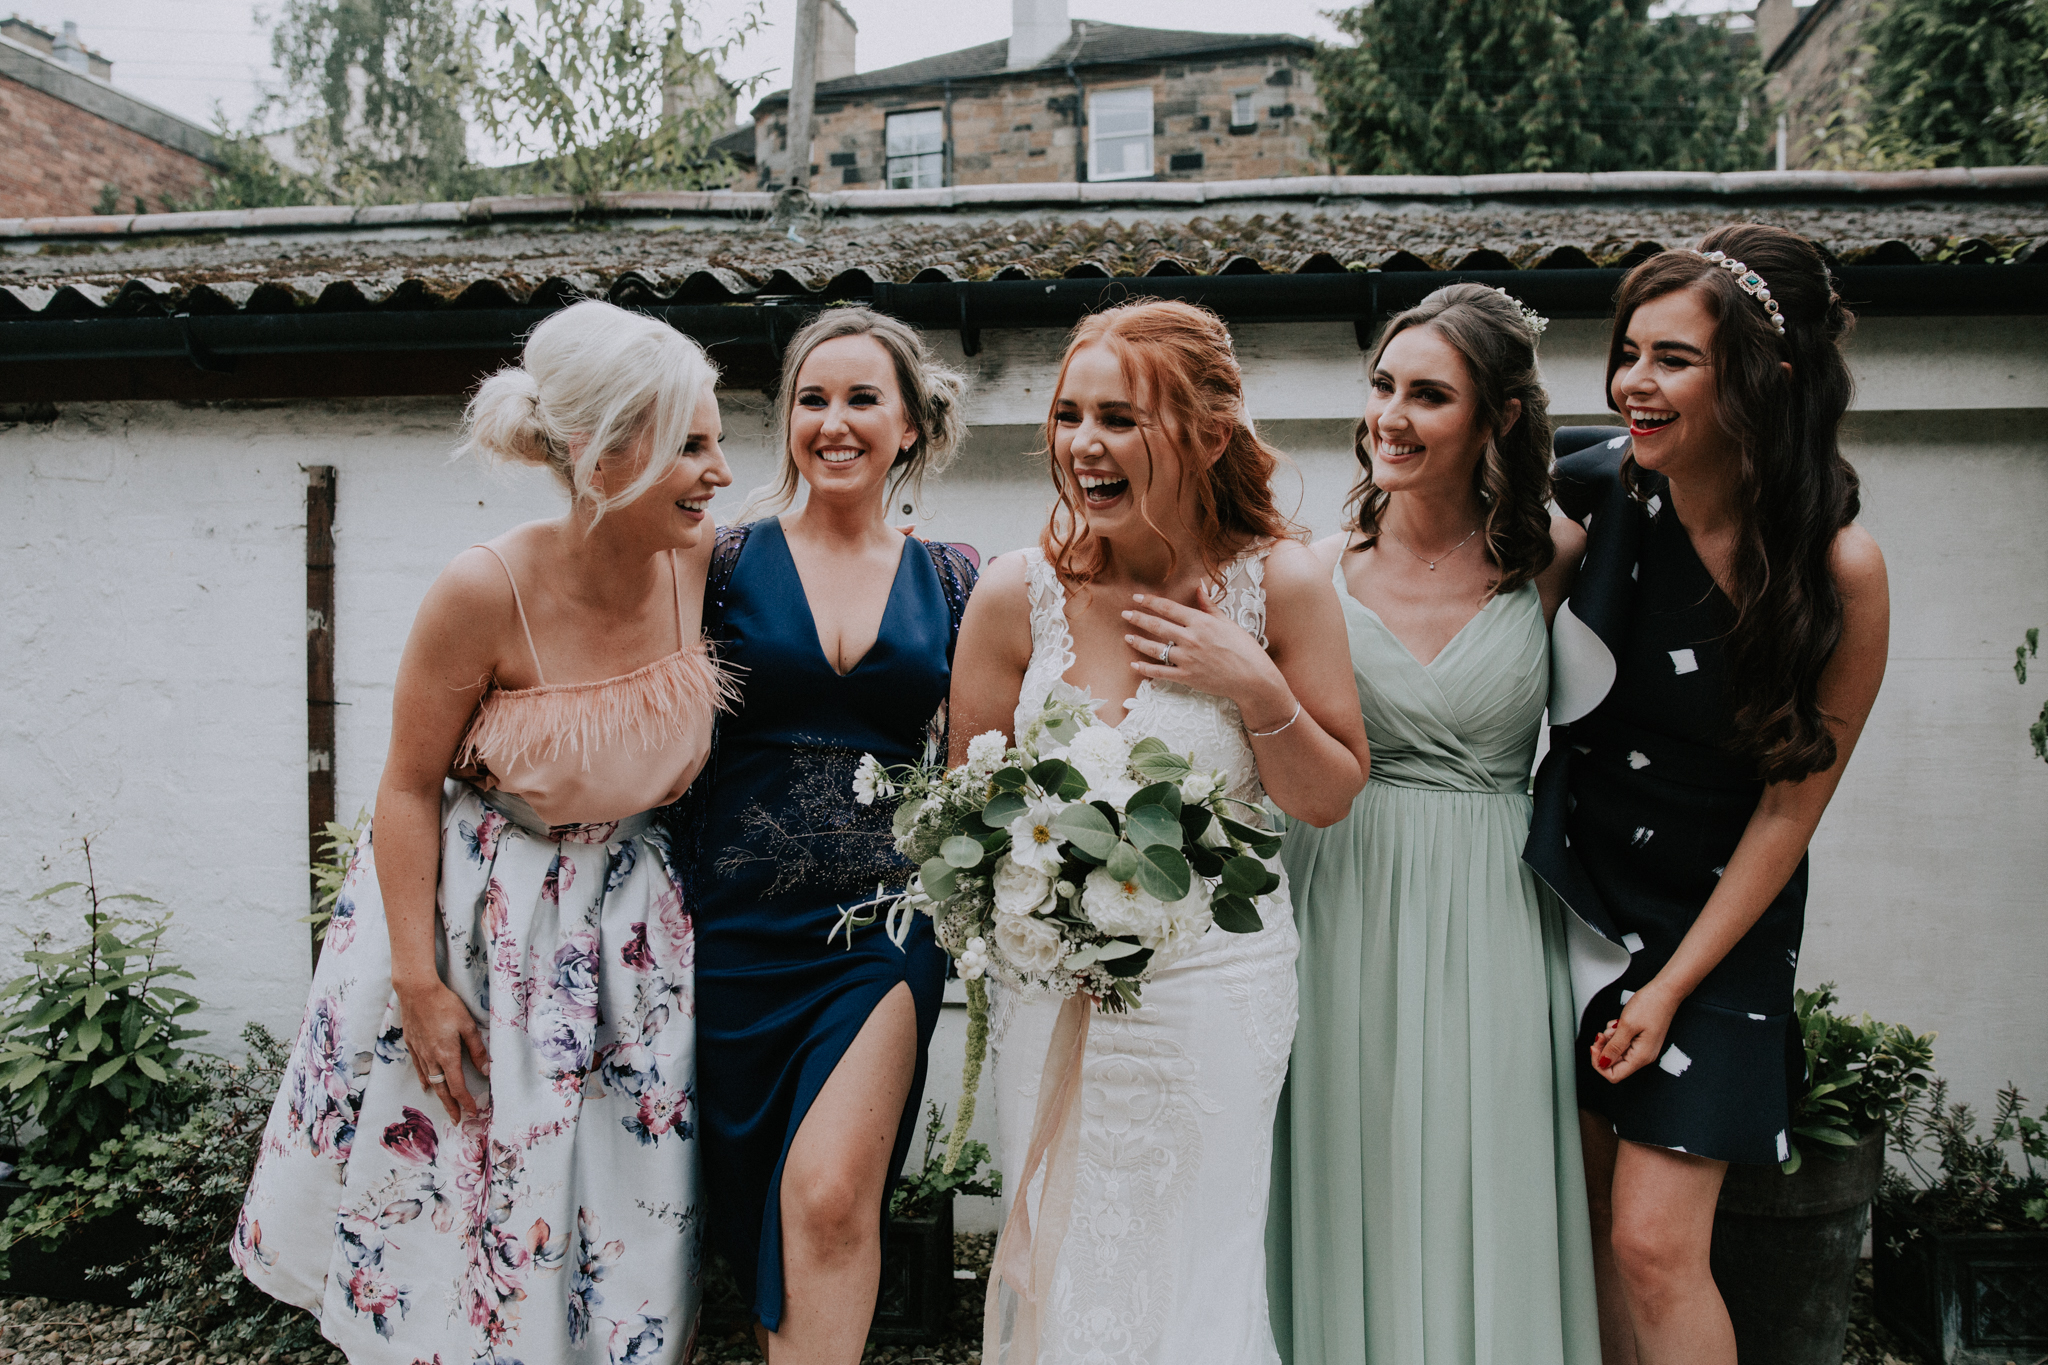 Bride and her friends happy photo